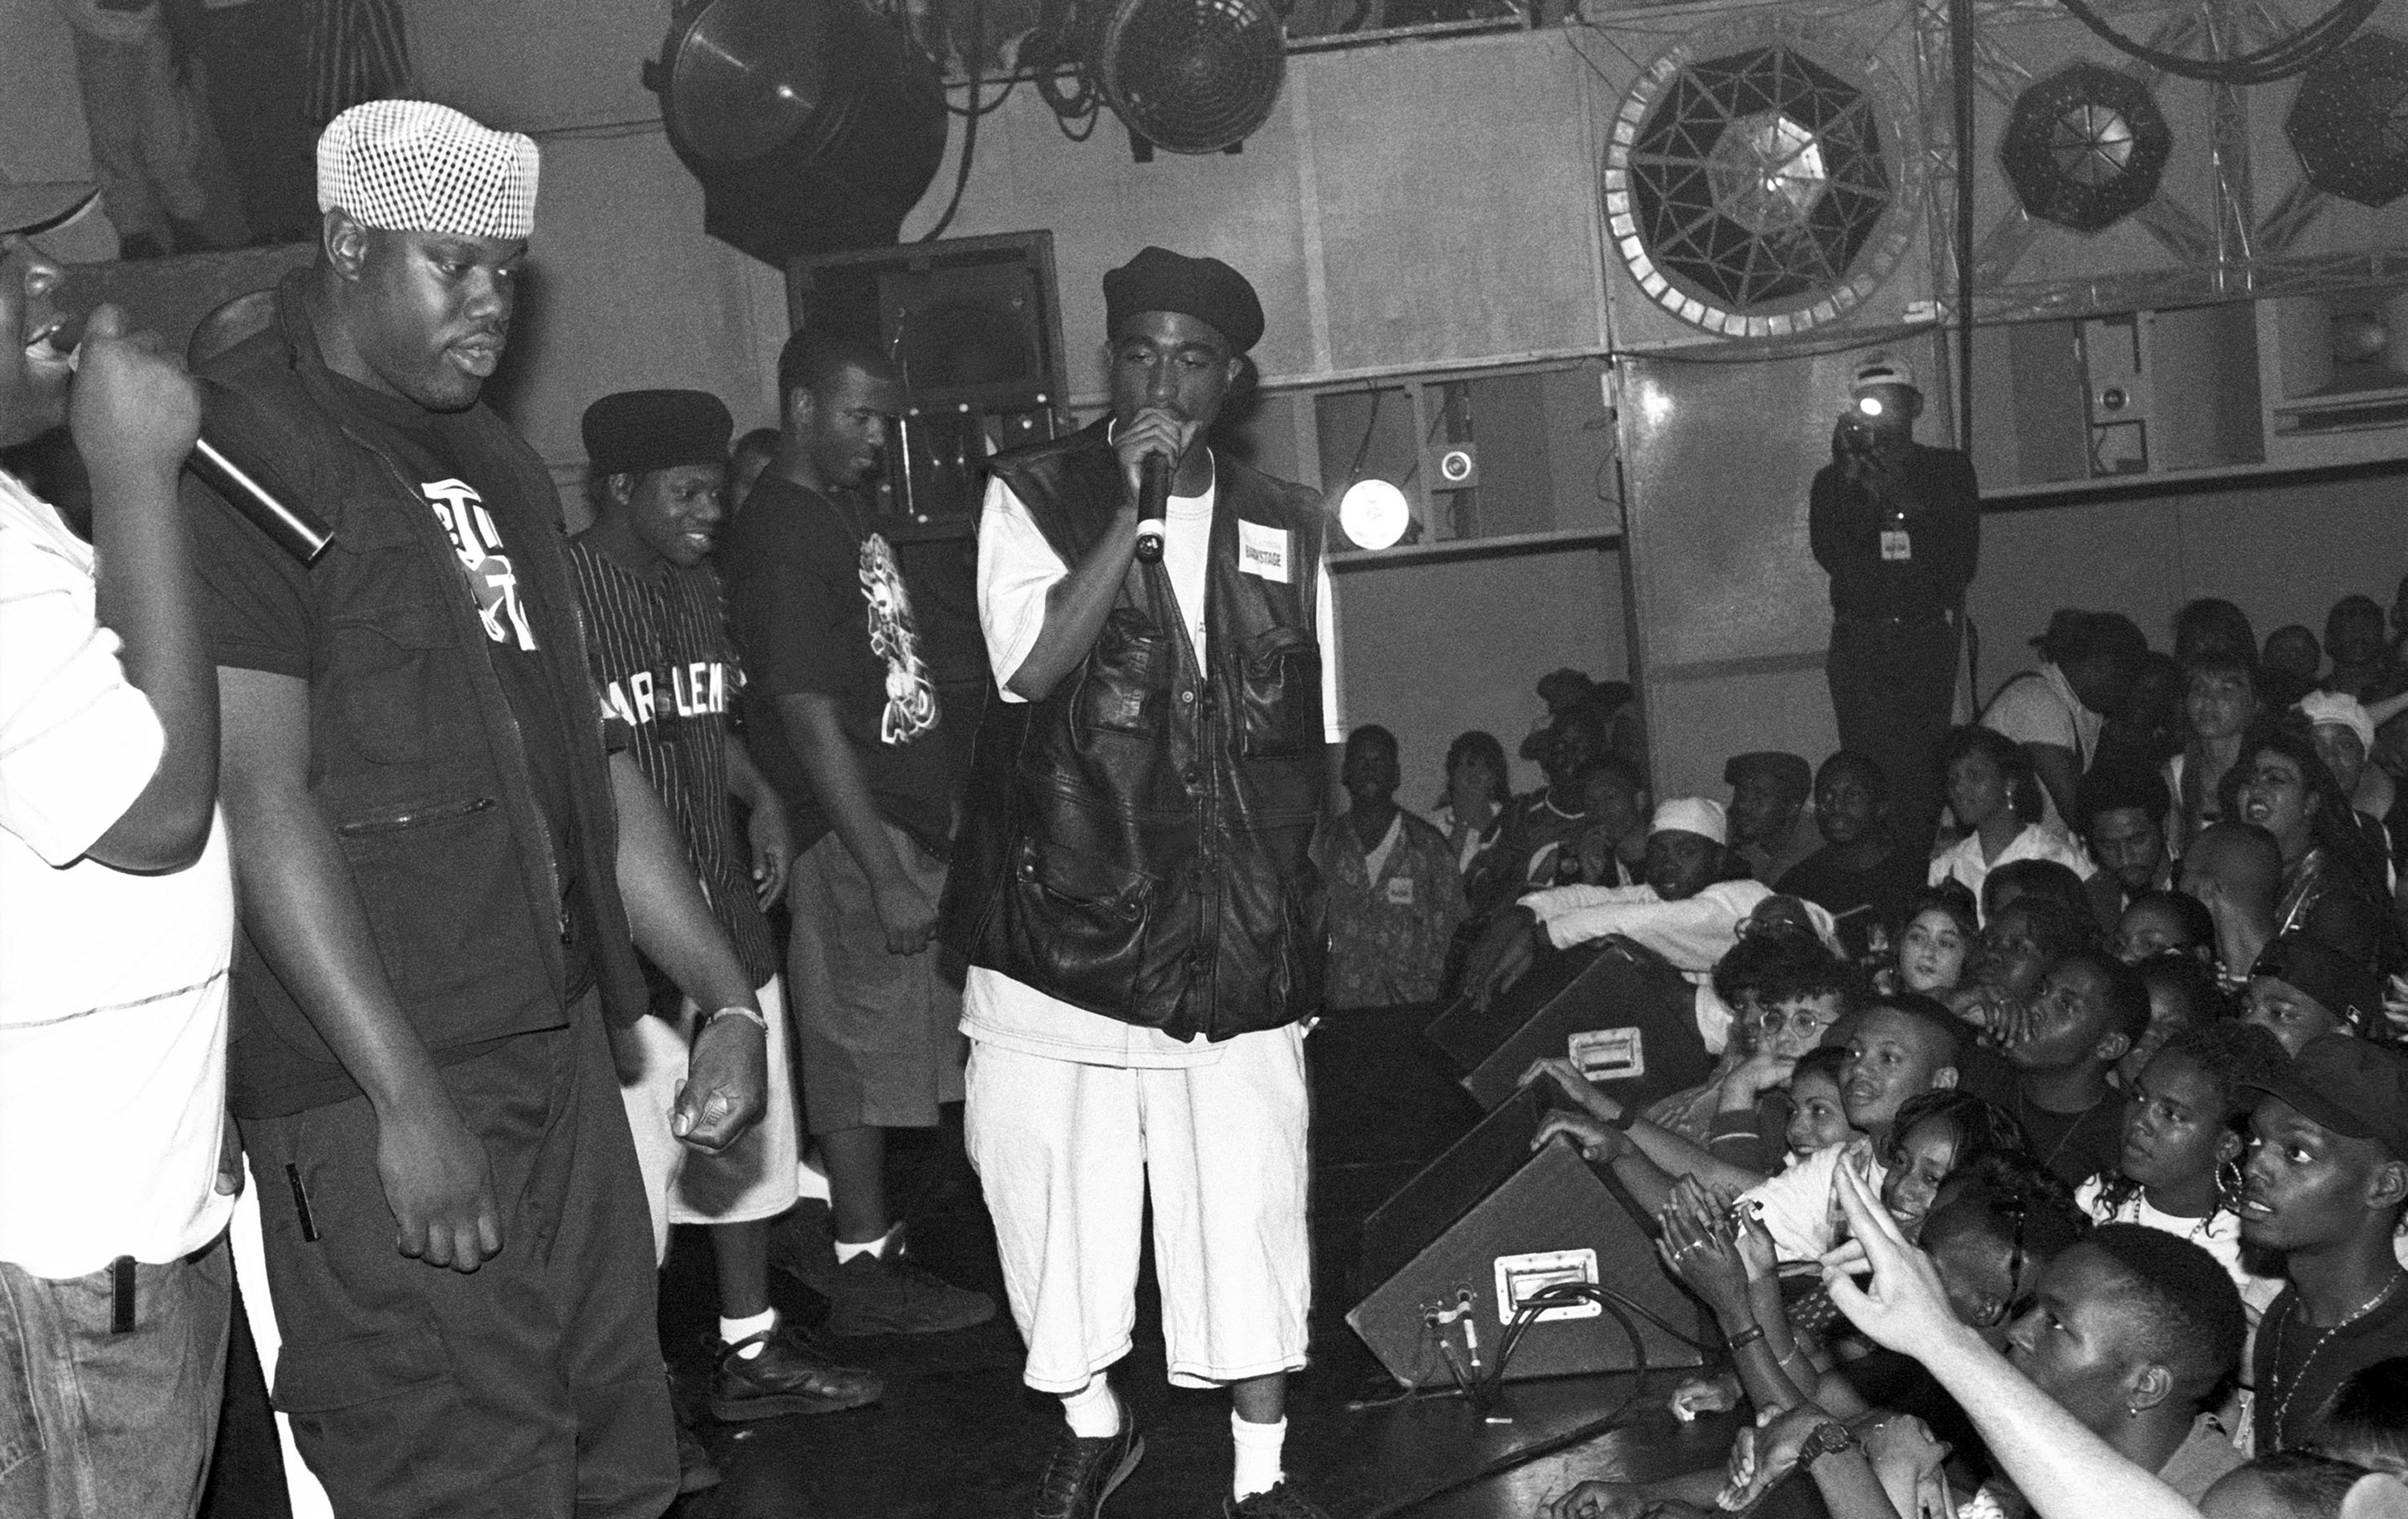 Tupac on a stage with other people raps into a microphone above a crowd of fans